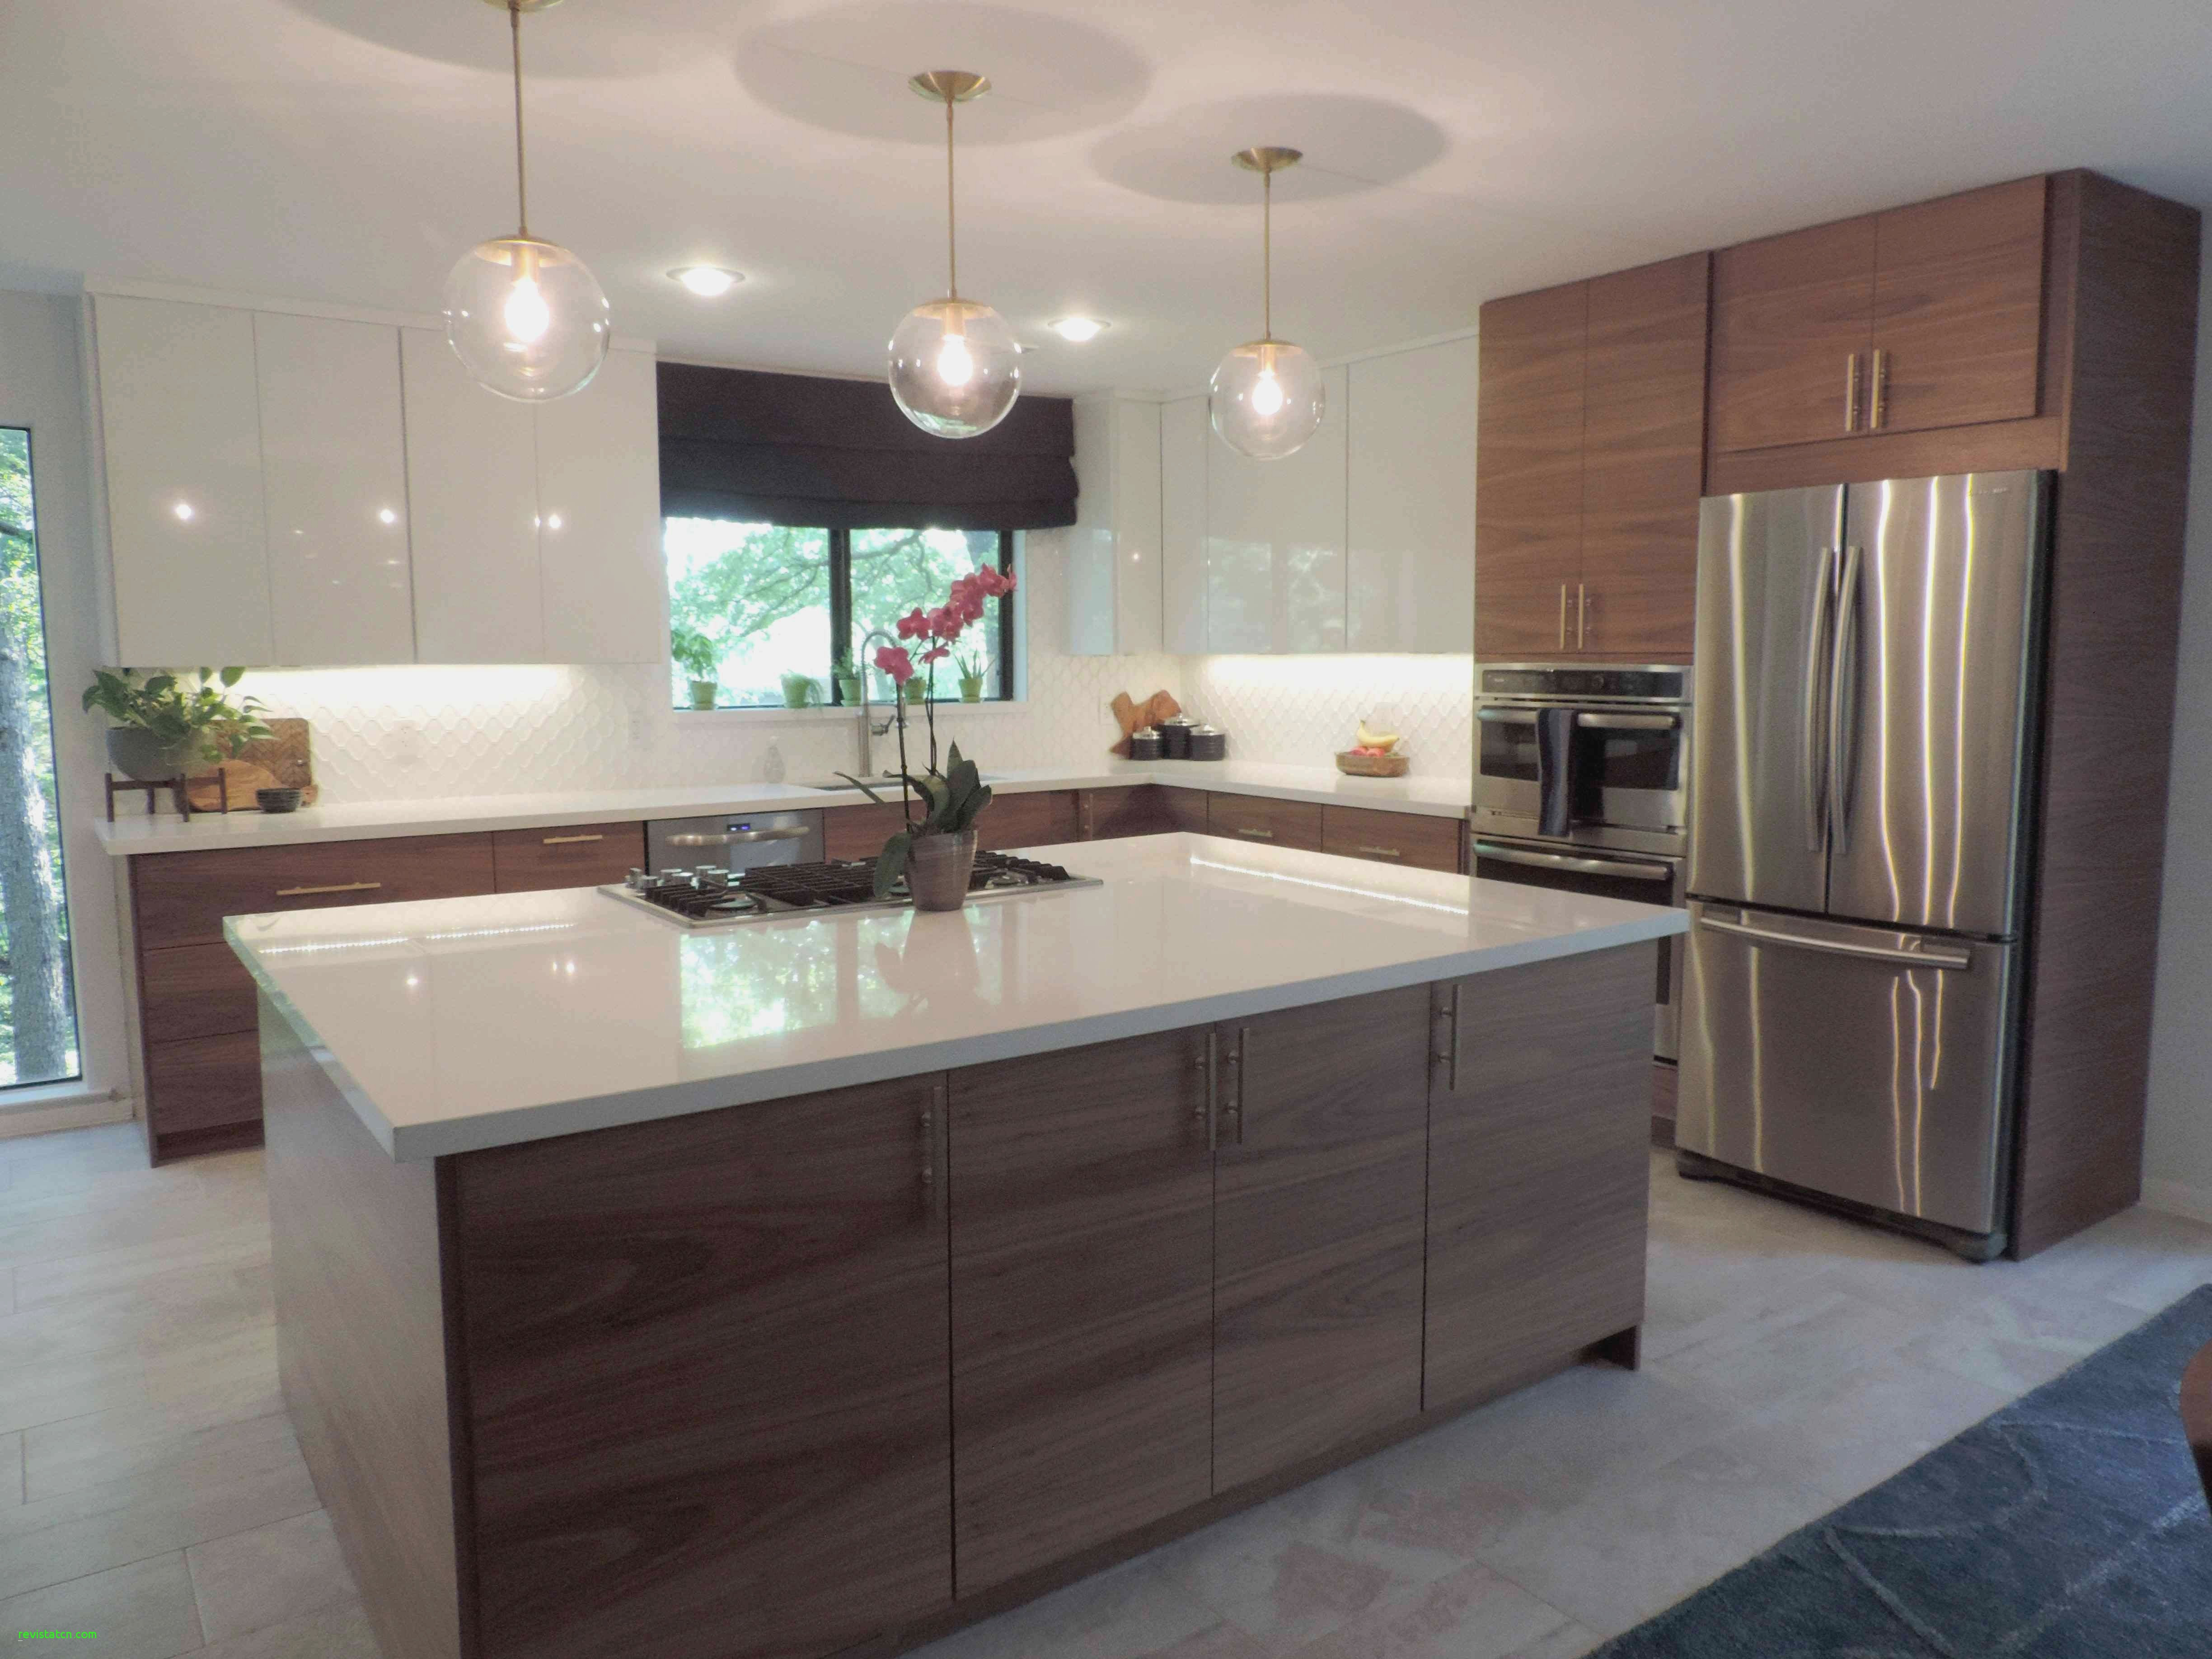 26 Nice Hardwood Floors In Kitchen Good Idea 2021 free download hardwood floors in kitchen good idea of wooden play kitchen with regard to comfy kitchen decor items luxury with wooden play kitchen with regard to comfy kitchen decor items luxury kitchen k